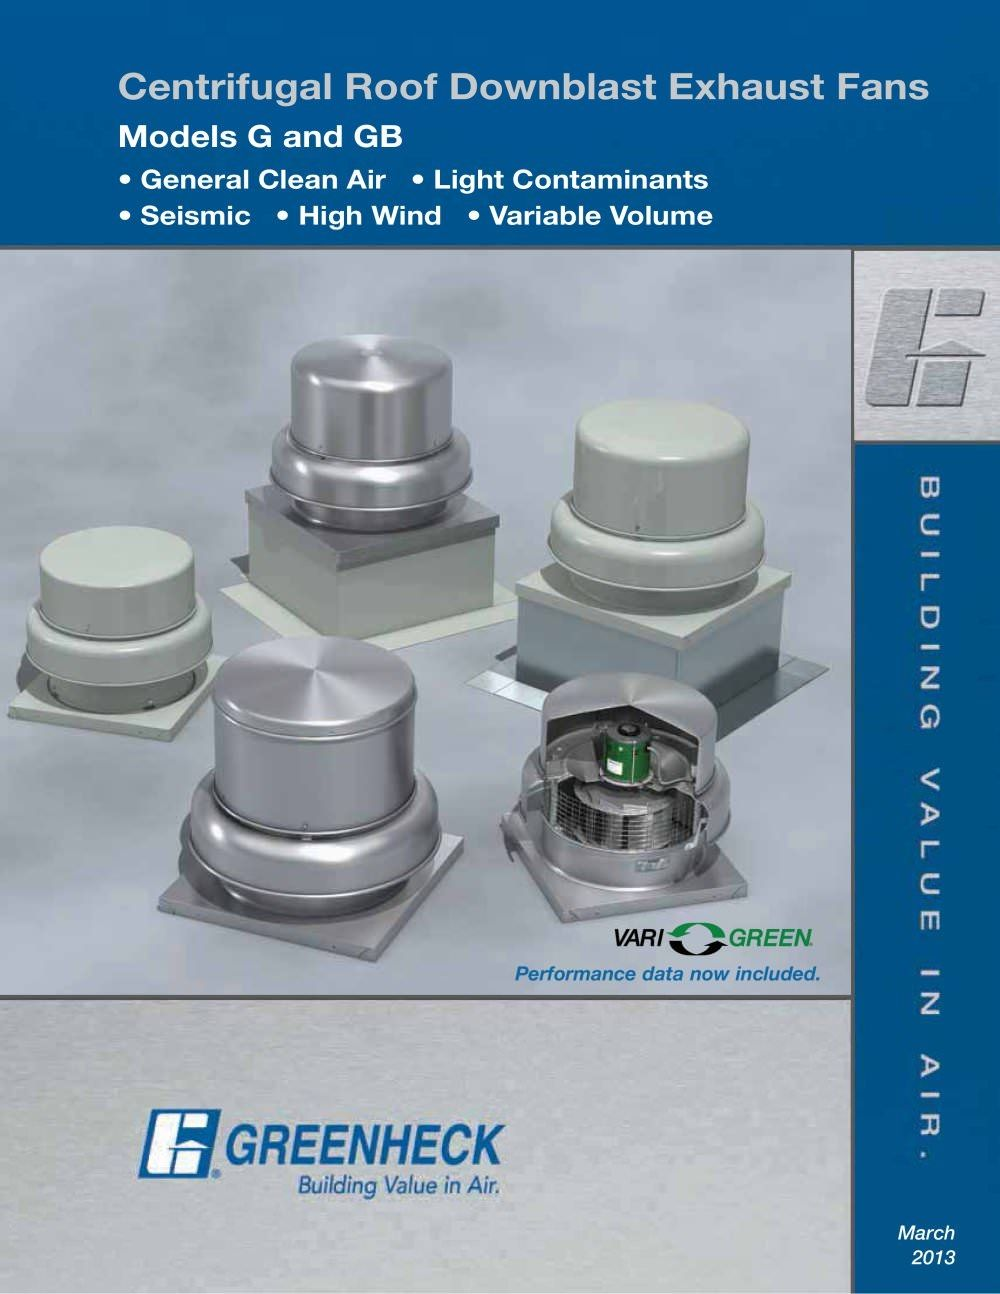 Greenheck exhaust fans distributors httpurresults greenheck exhaust fans distributors aloadofball Choice Image